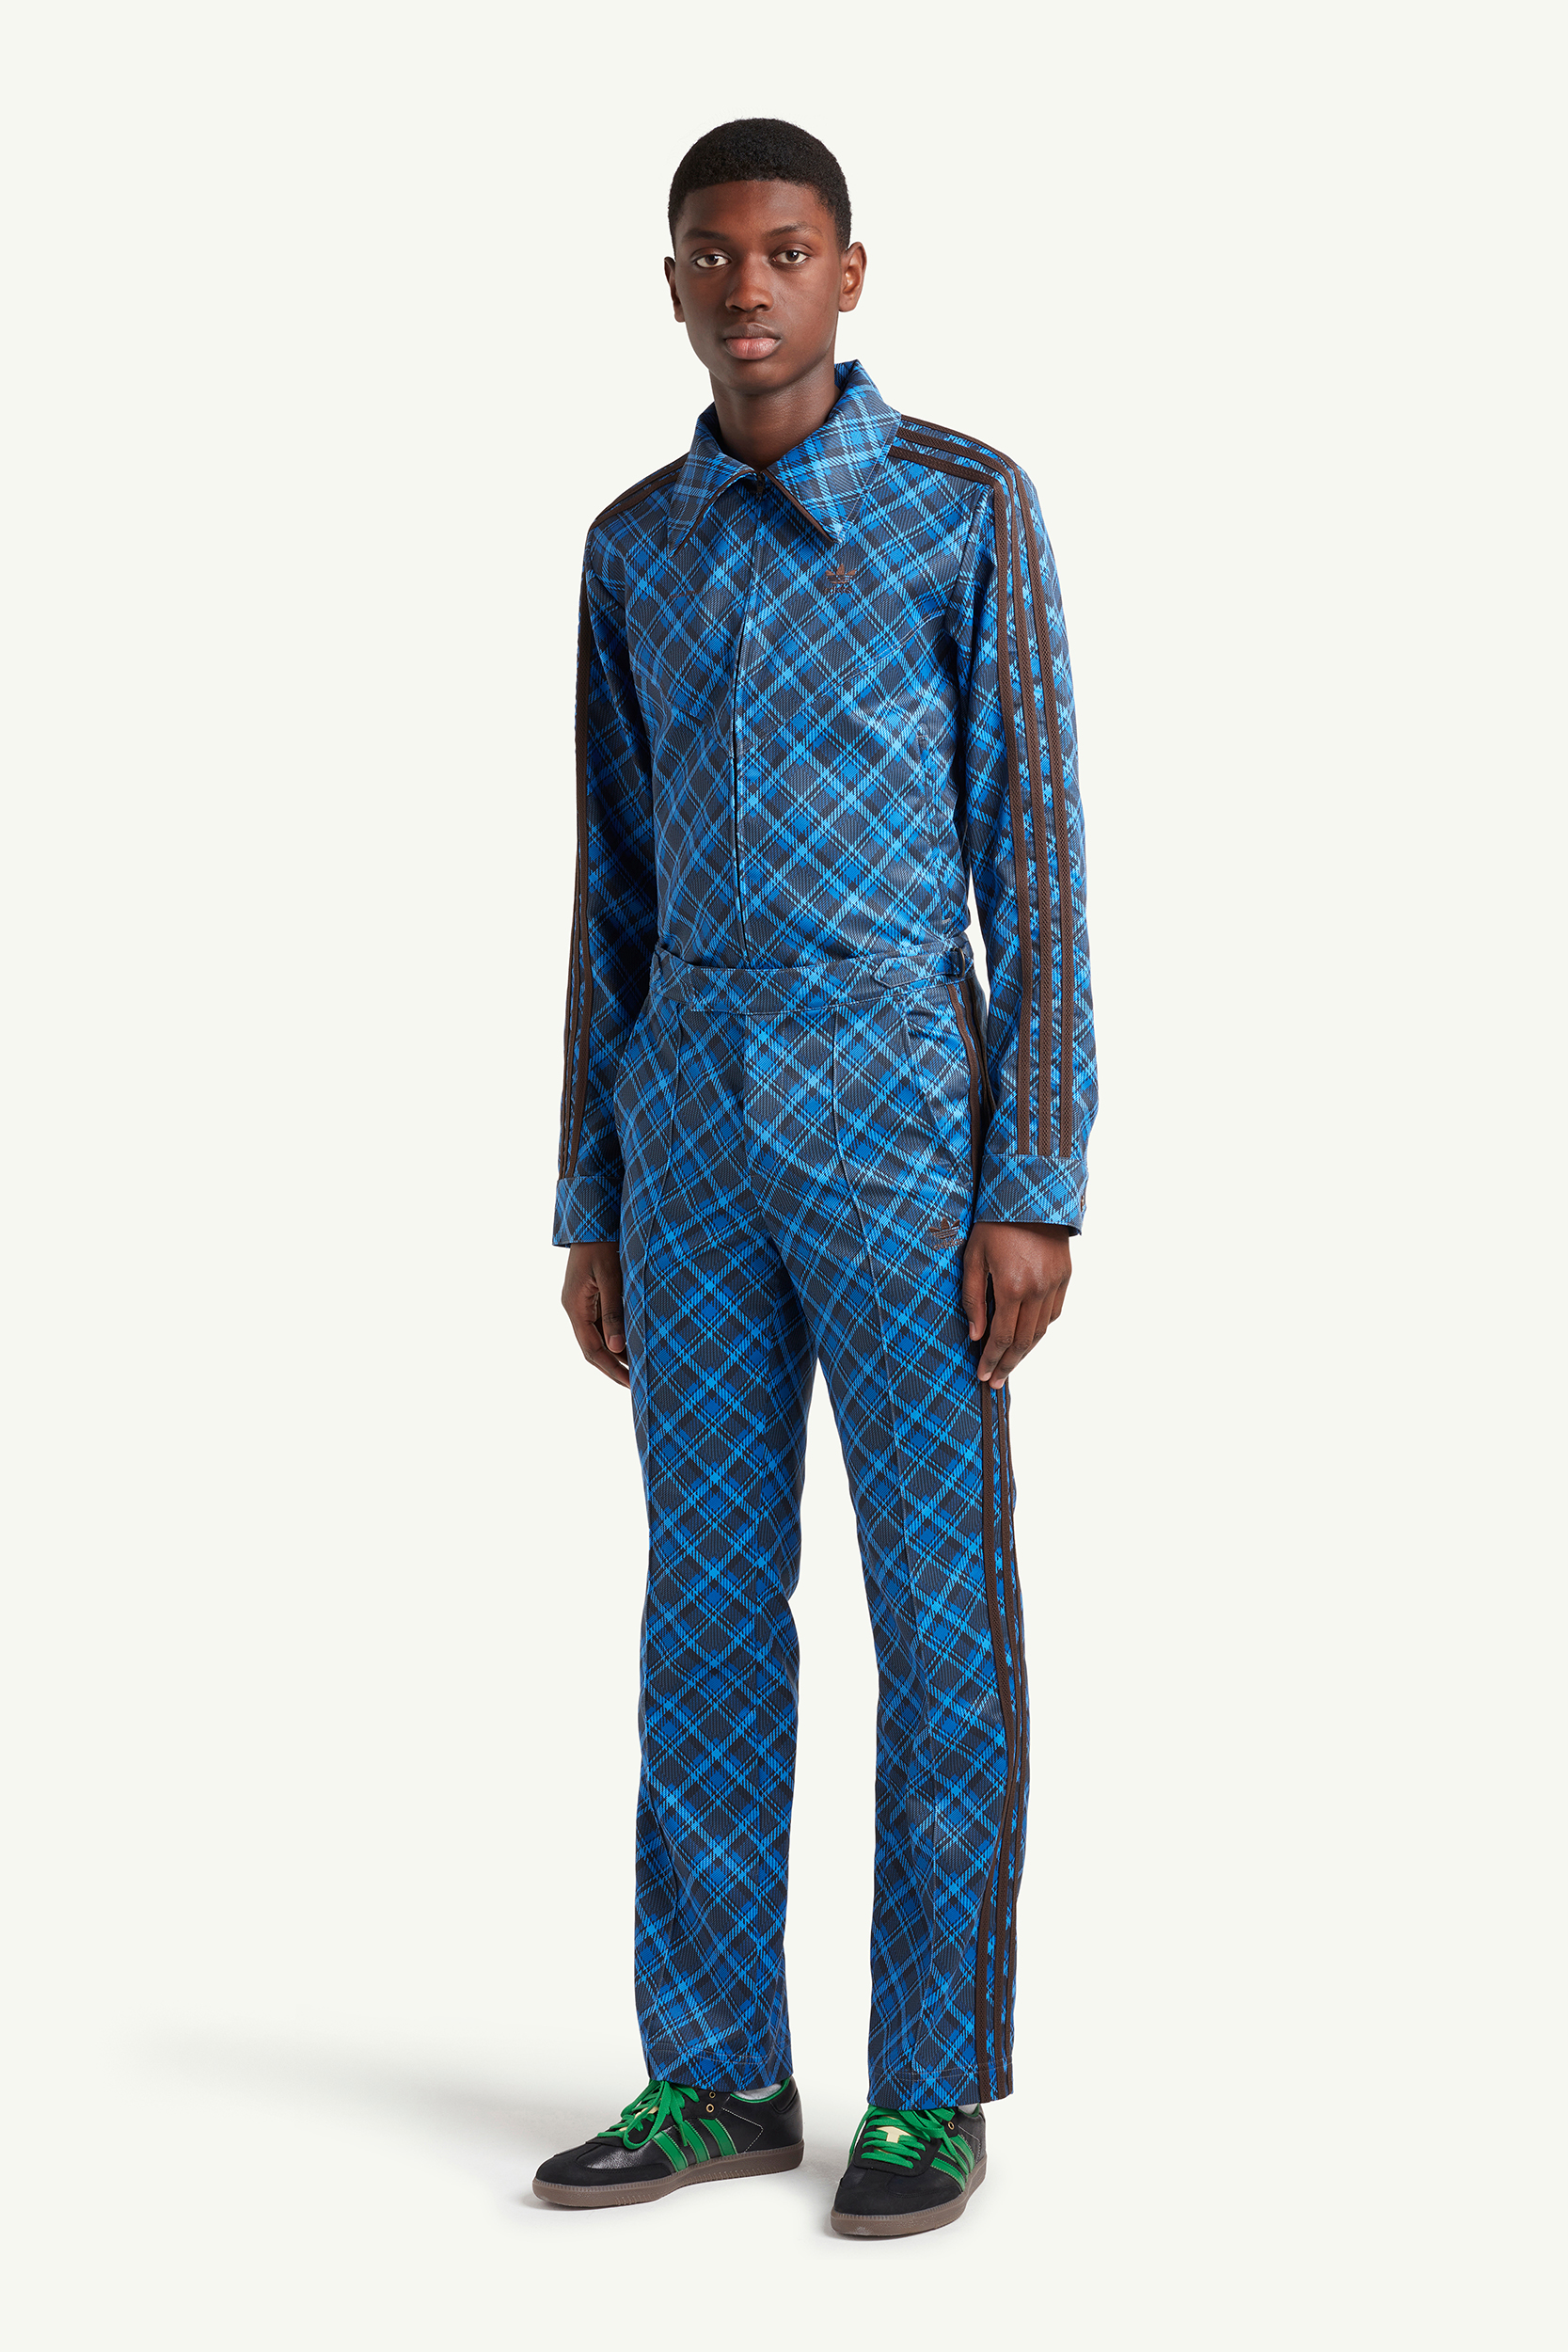 Menswear model wearing dark and light blue checkered suit by Wales Bonner | eCommerce Photography London | LRP